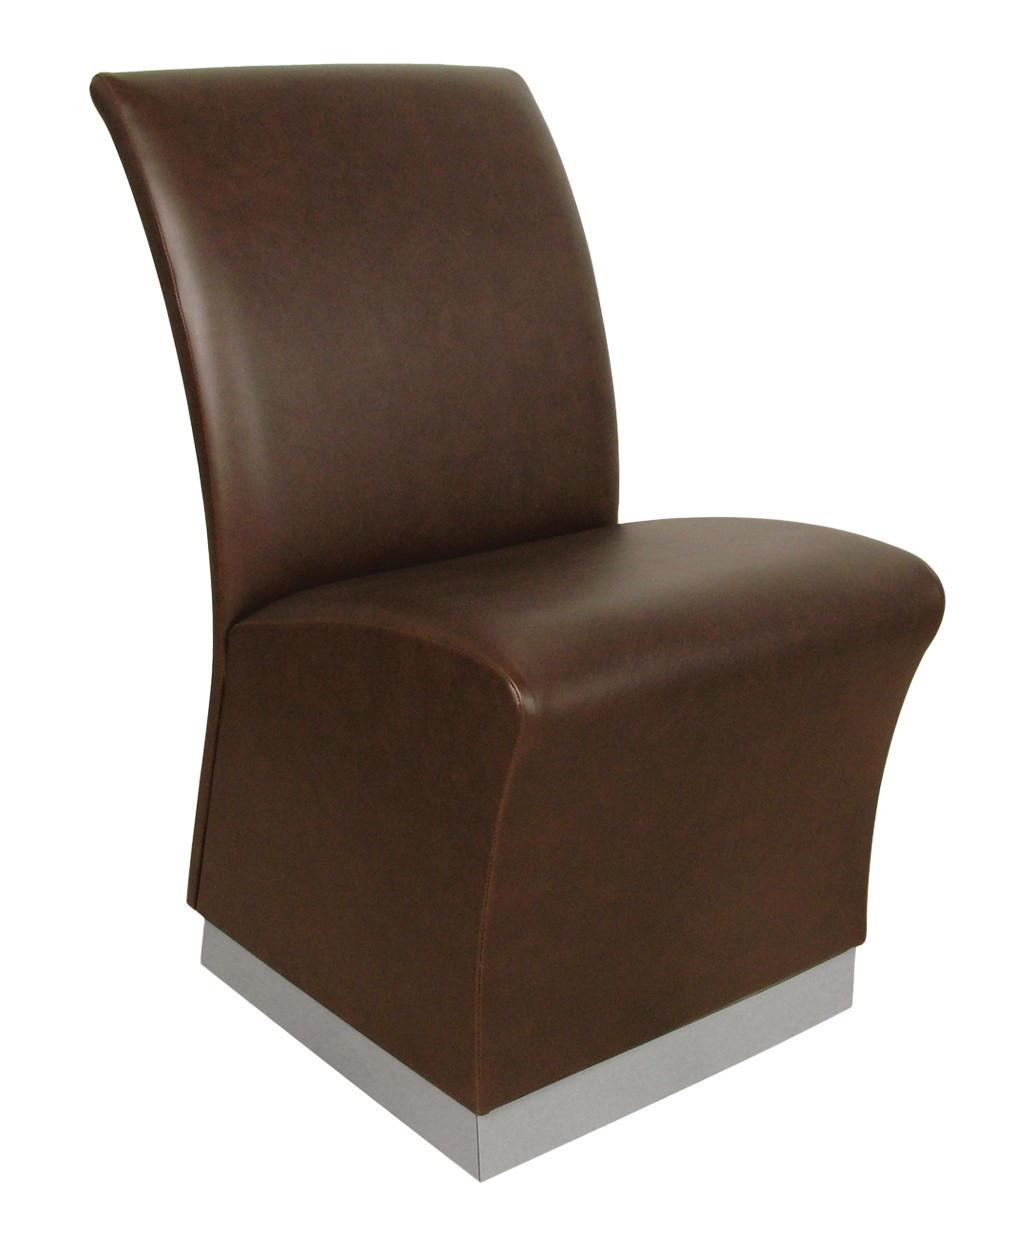 Collins QSE 1975 Lanai Reception Chair w/ Toe-Kick Base